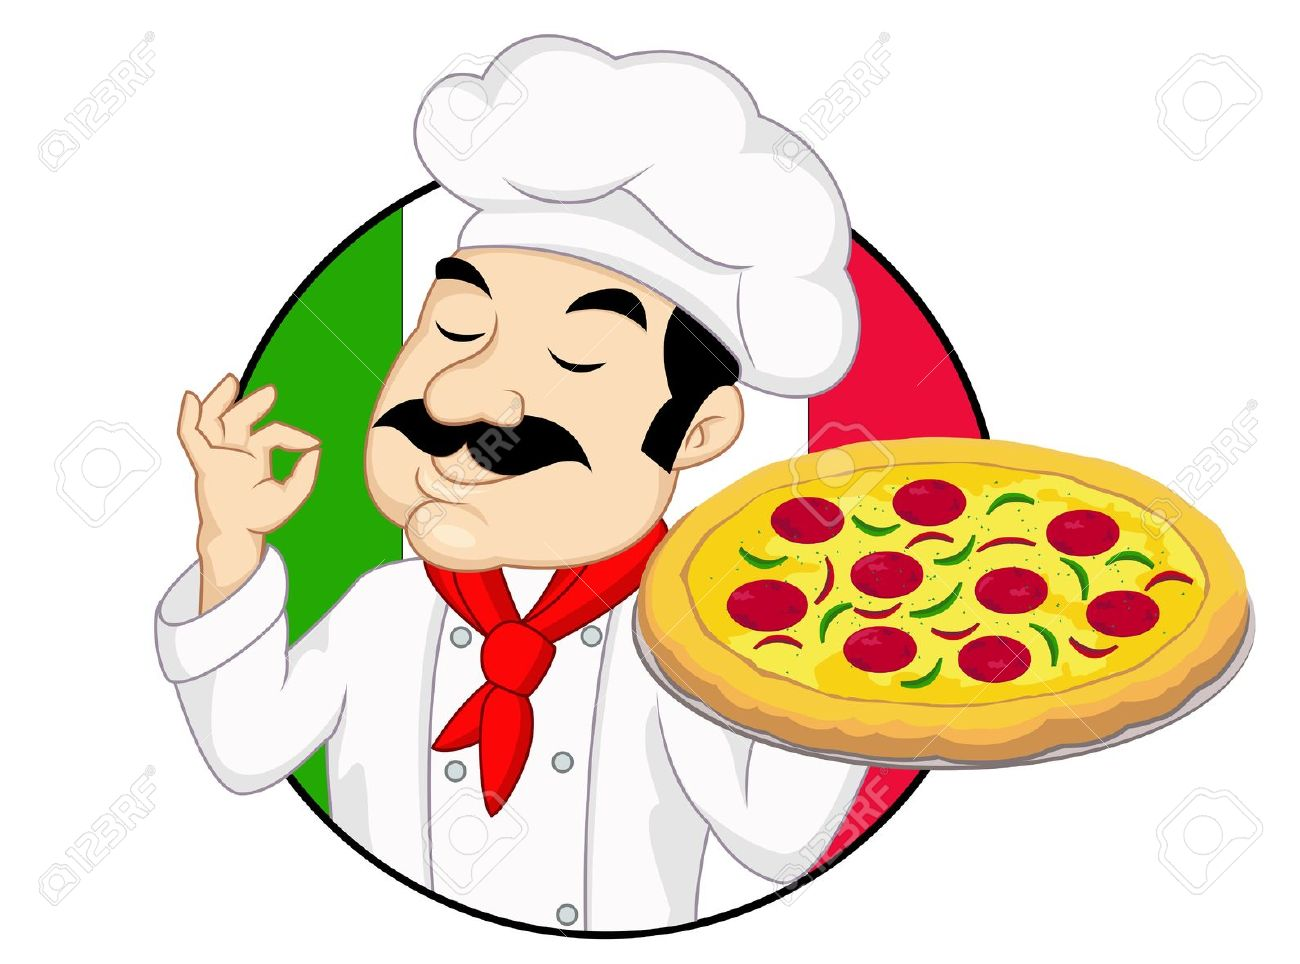 Pizza chef clipart clipart download 5,310 Pizza Chef Stock Vector Illustration And Royalty Free Pizza ... clipart download